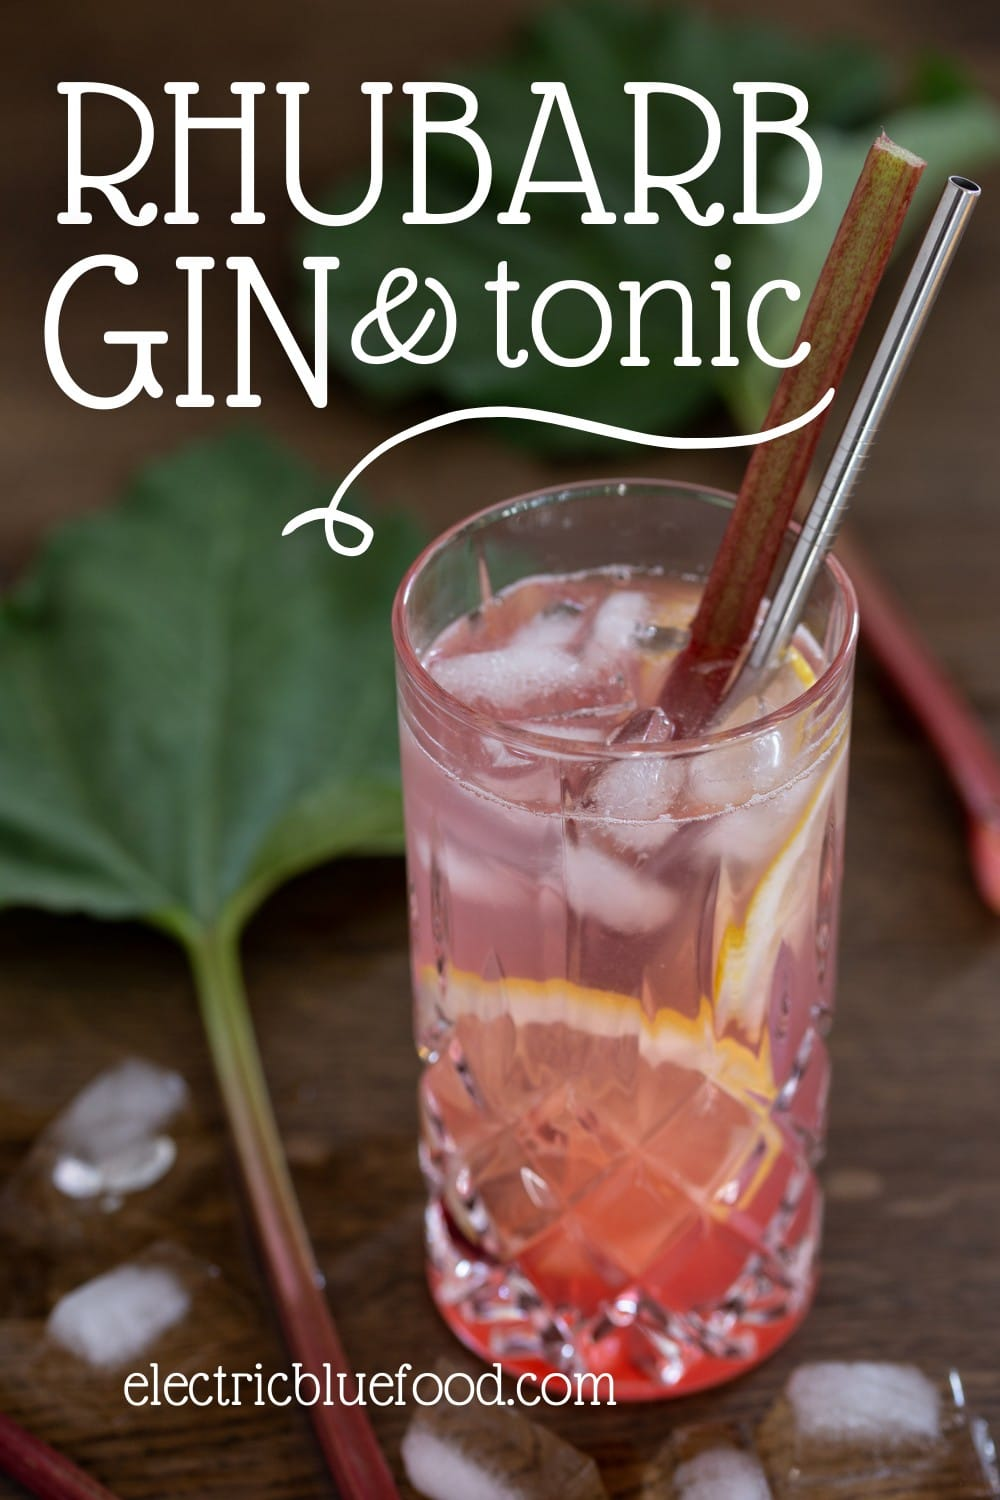 Rhubarb G&T made with homemade rhubarb syrup. A summer flavour variation of a classic cocktail.